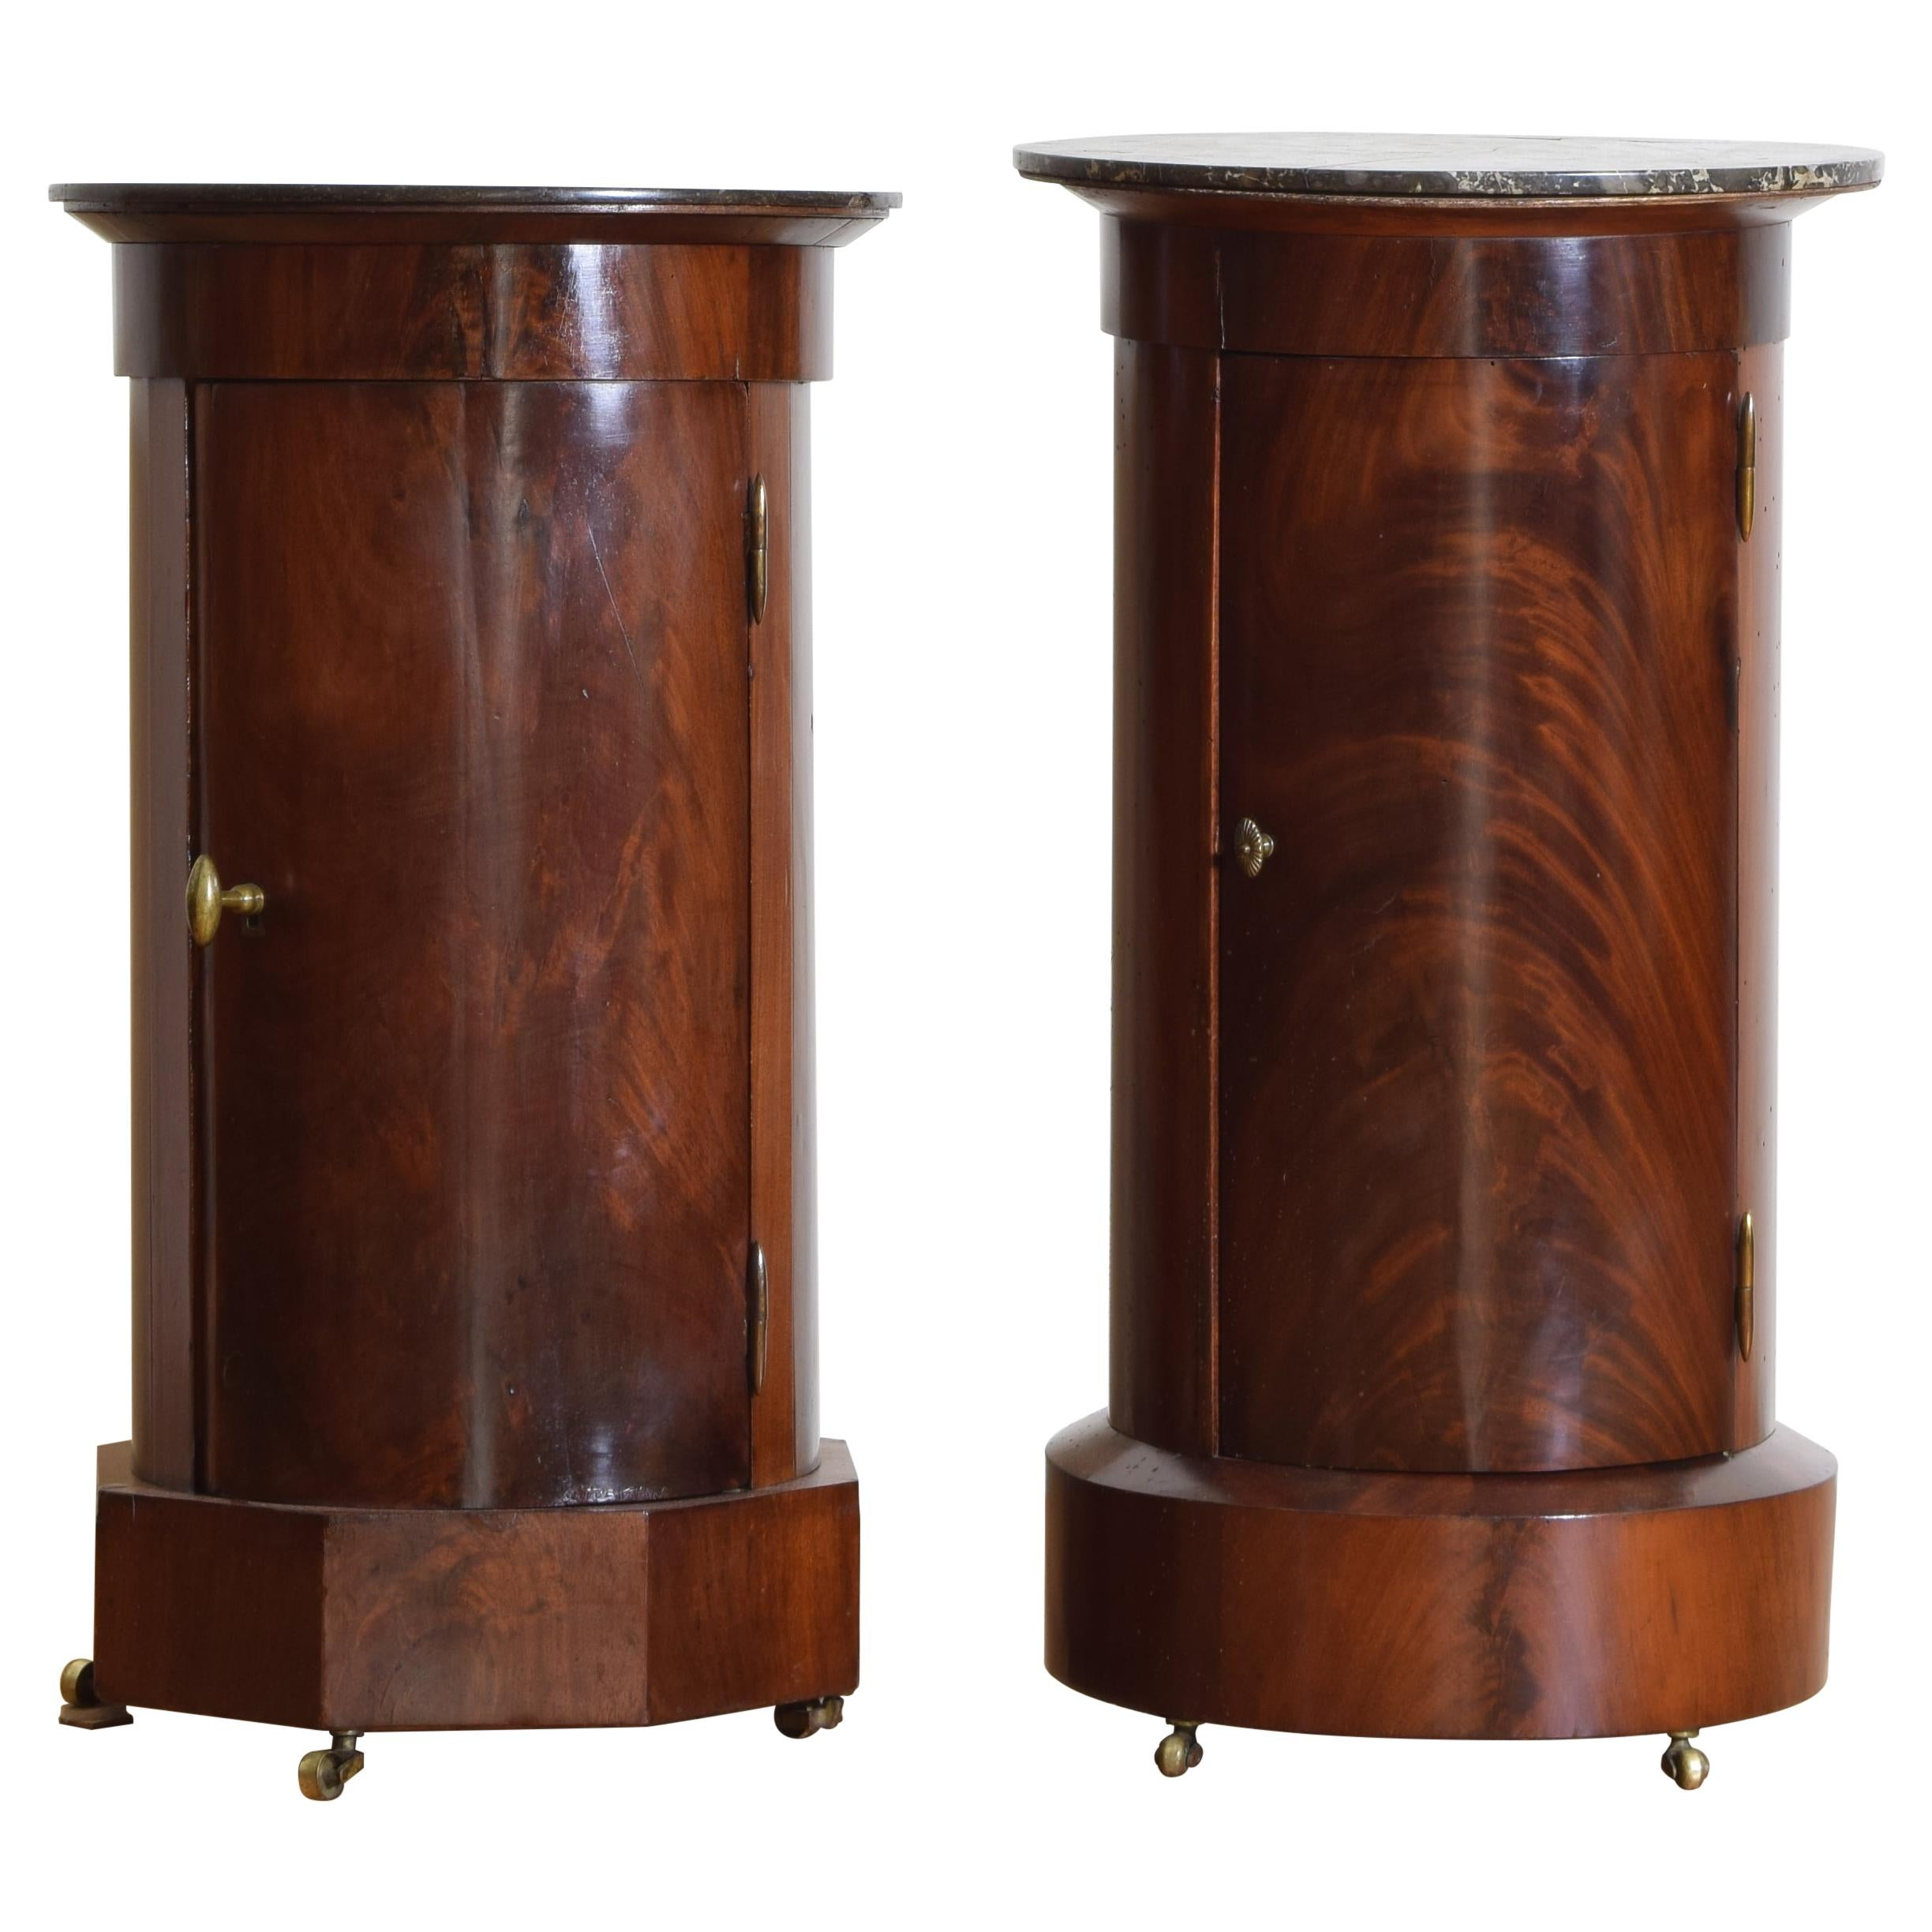 Near Pair French Neoclassic Mahogany & Marble Top Pedestal Cabinets, 2ndq 19thc